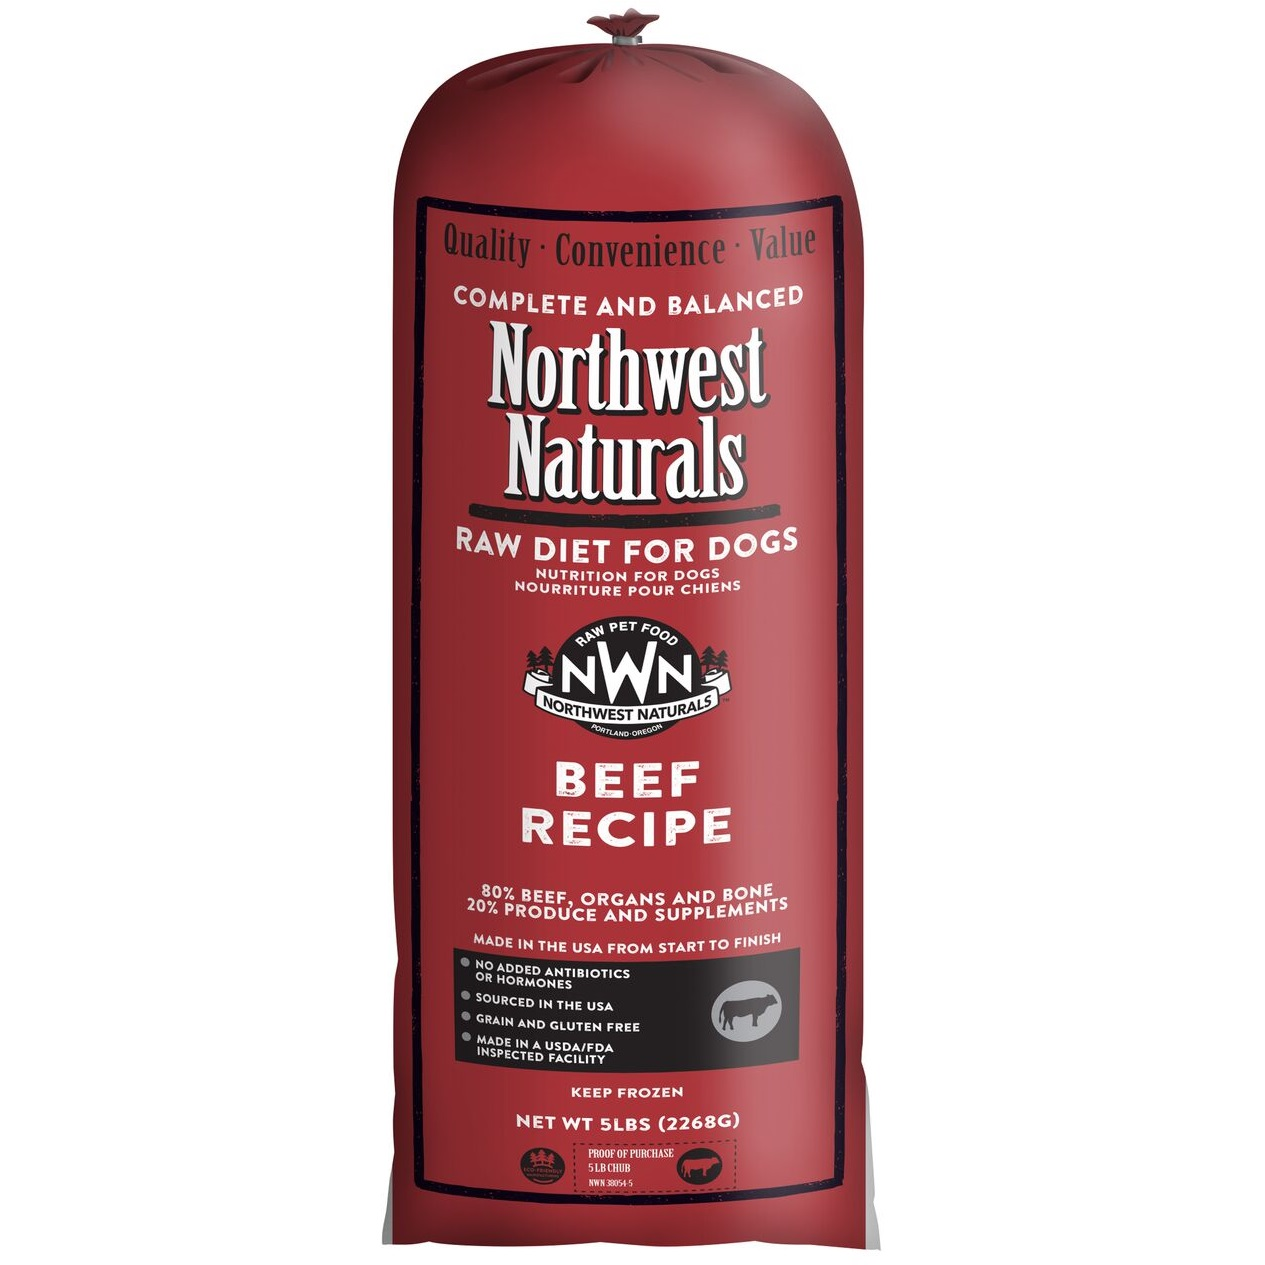 Northwest Naturals Raw Diet Grain-Free Beef Chub Roll Raw Frozen Dog Food, 5-lb